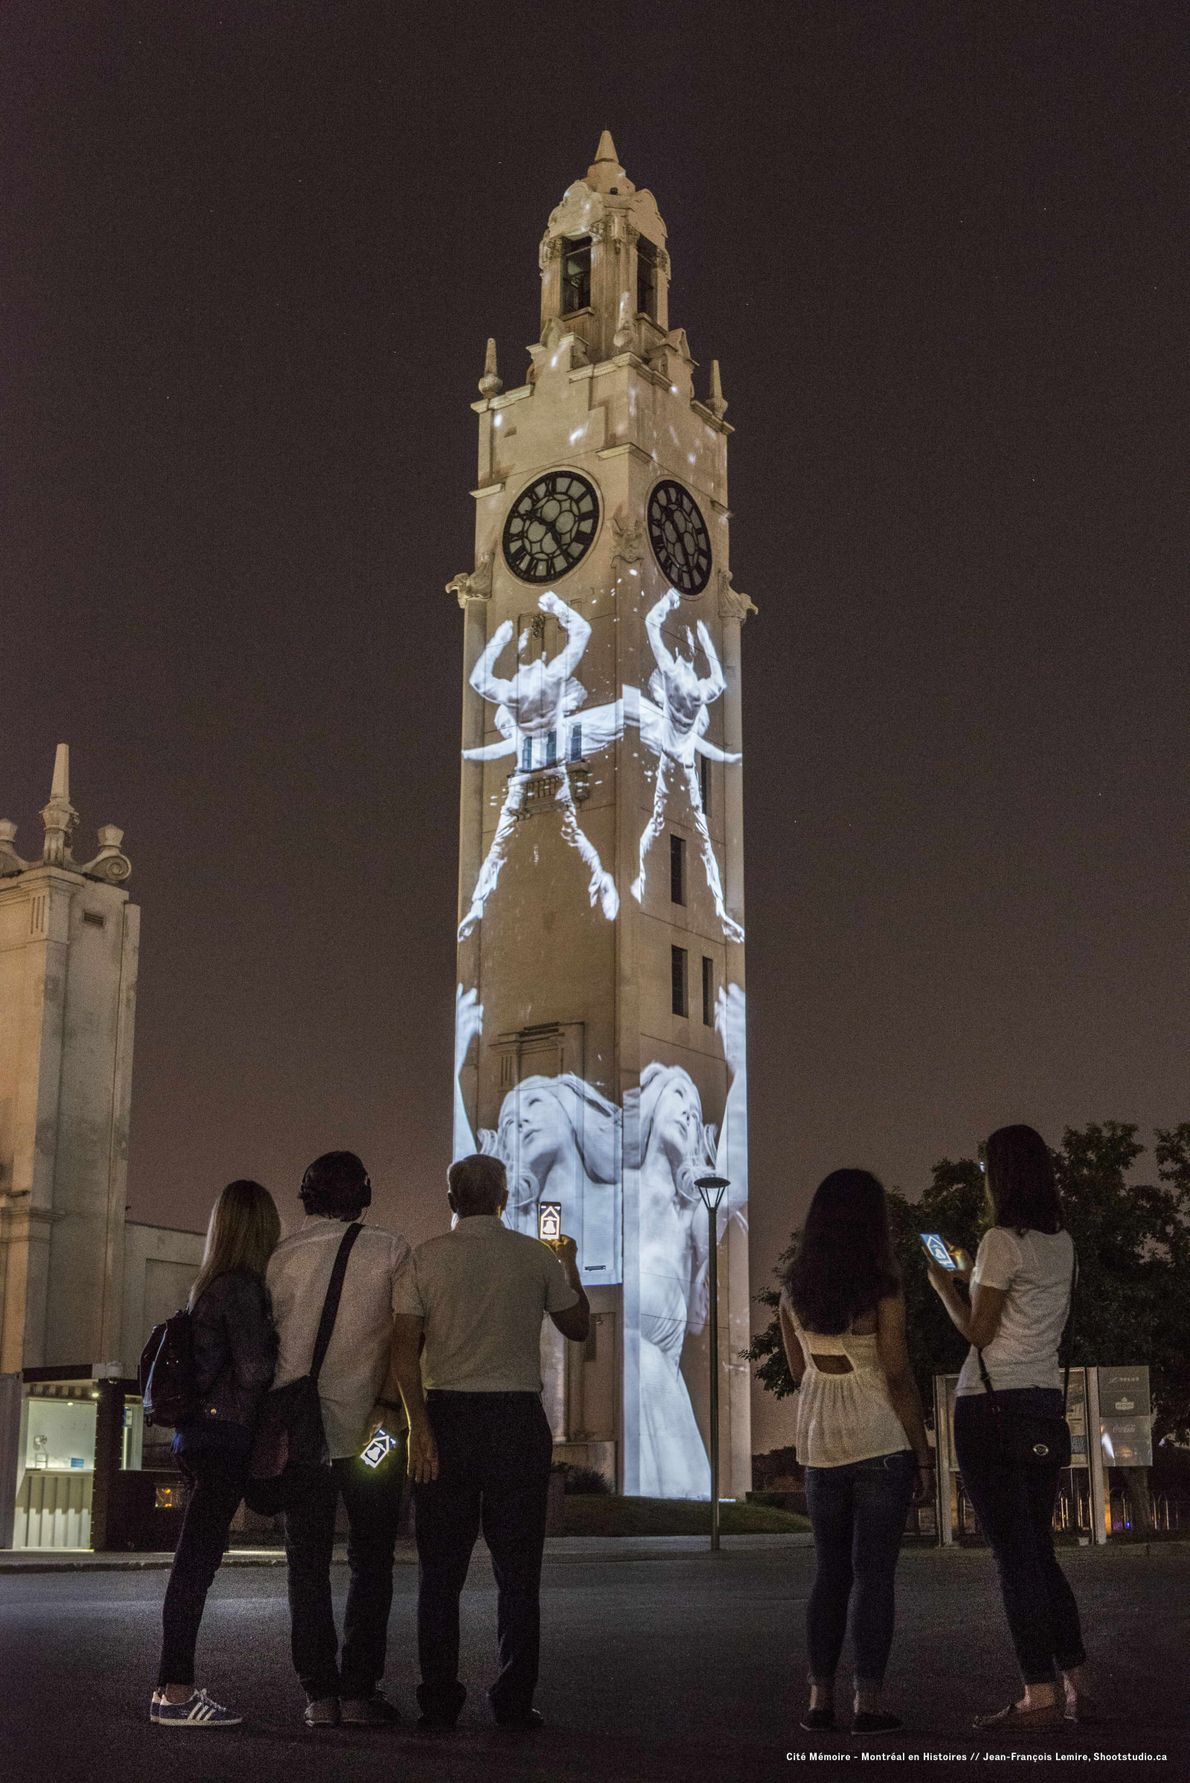 Projected ghosts from the past illustrate the many stories told through the Cité Mémoire app and ...